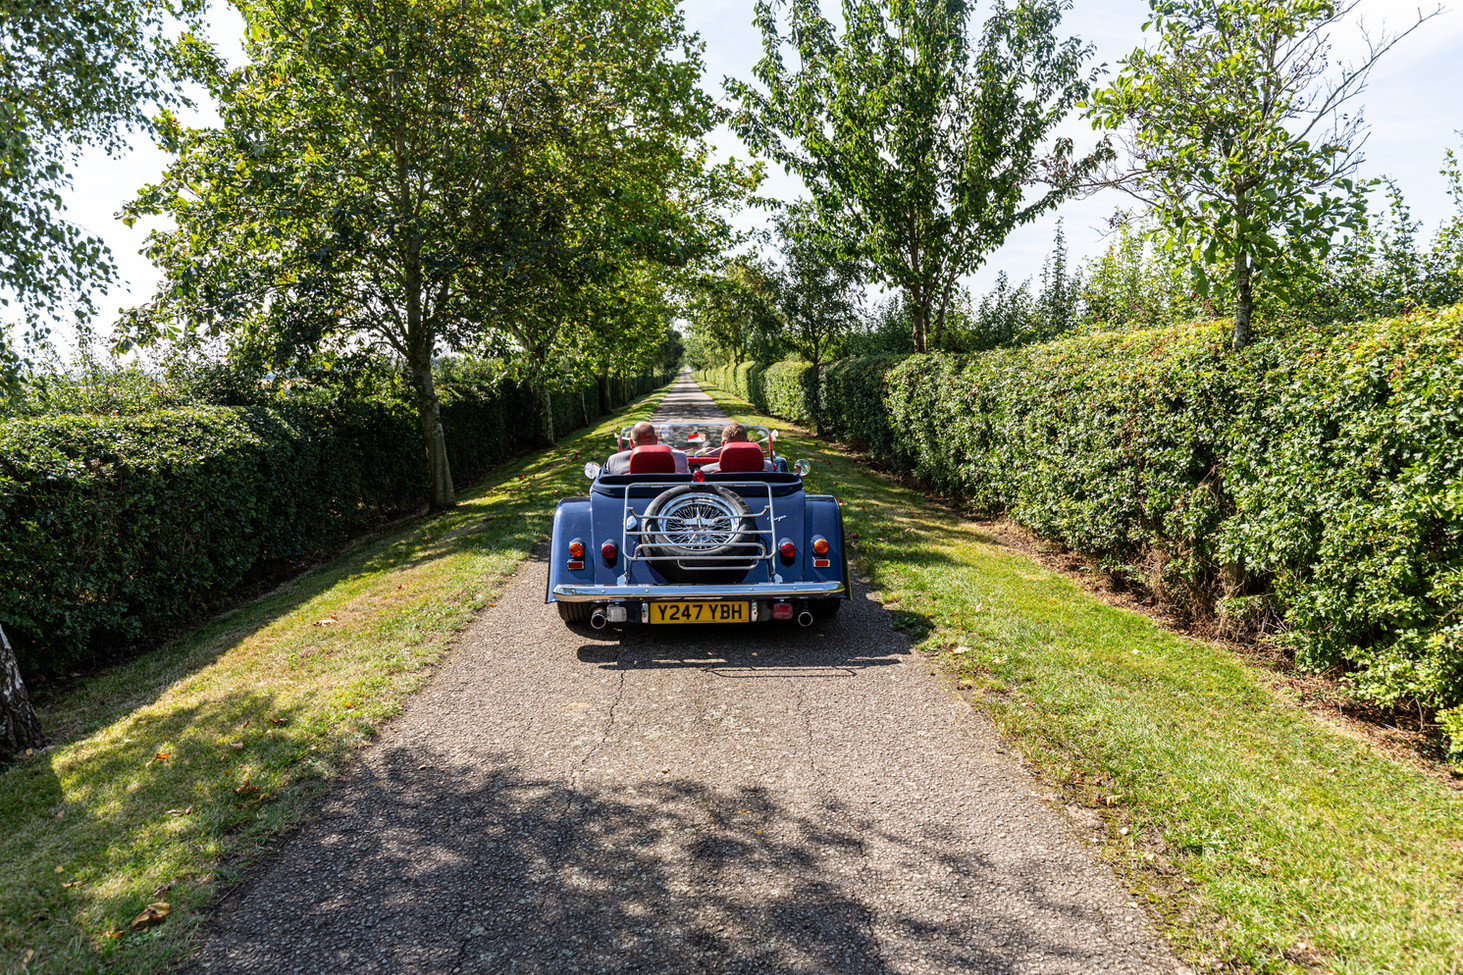 Groom and Bestman in a Morgan sports car on a country lane.